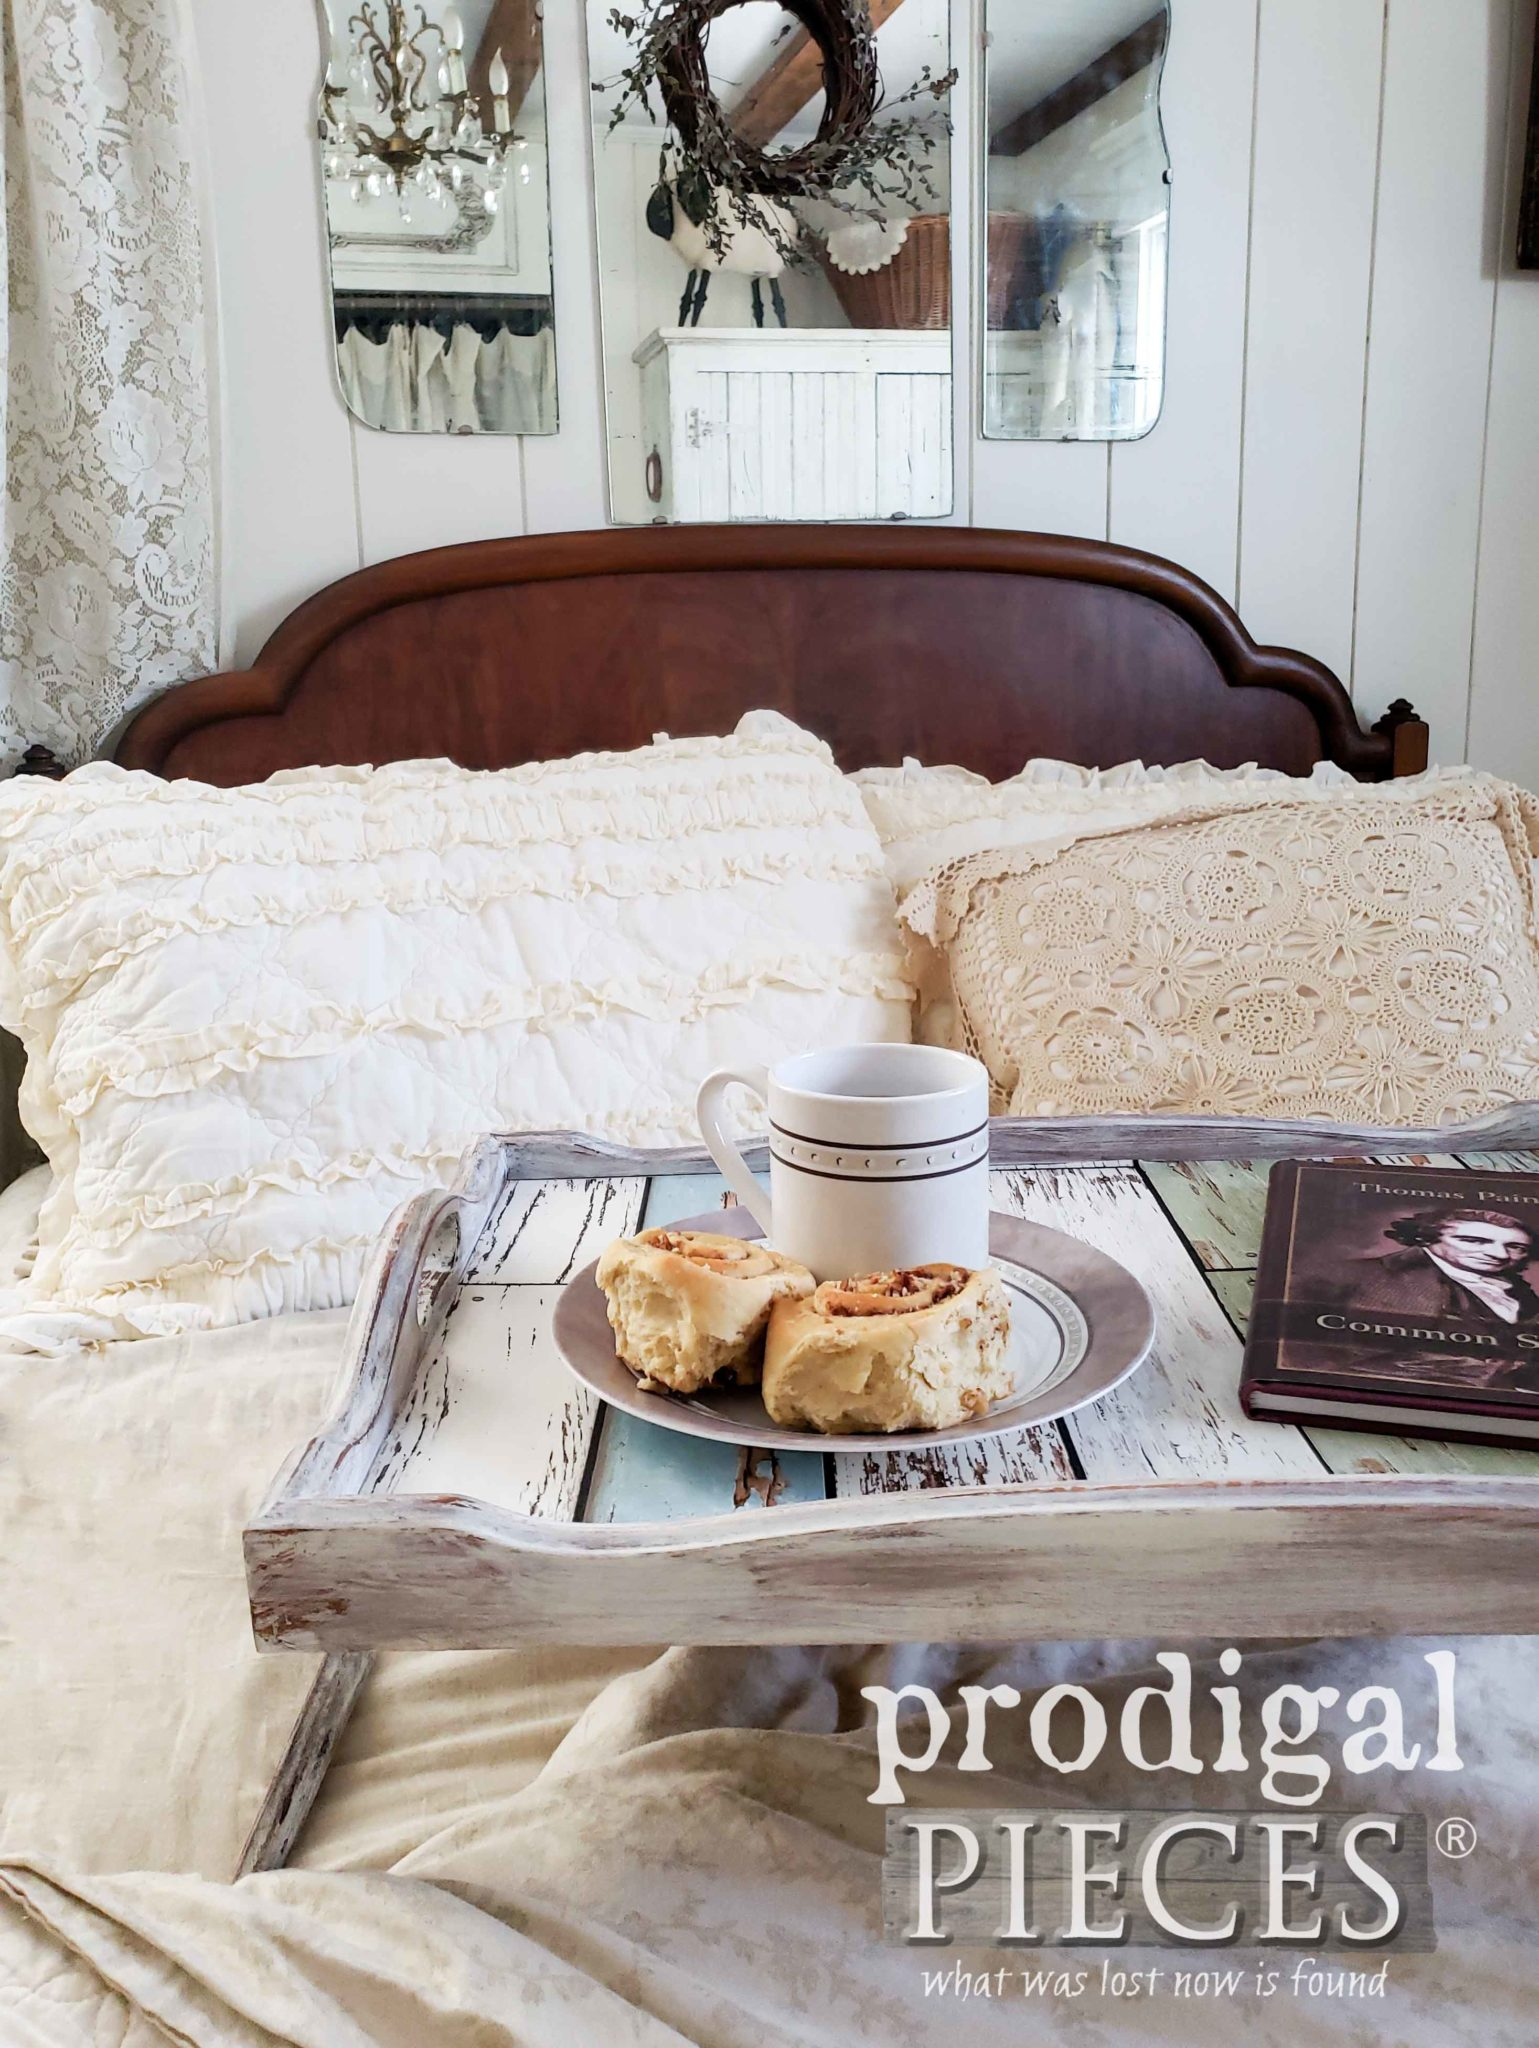 DIY Vintage Bed Tray Makeover by Larissa of Prodigal Pieces | prodigalpieces.com #prodigalpieces #farmhouse #diy #home #homedecor #shopping #homedecorideas